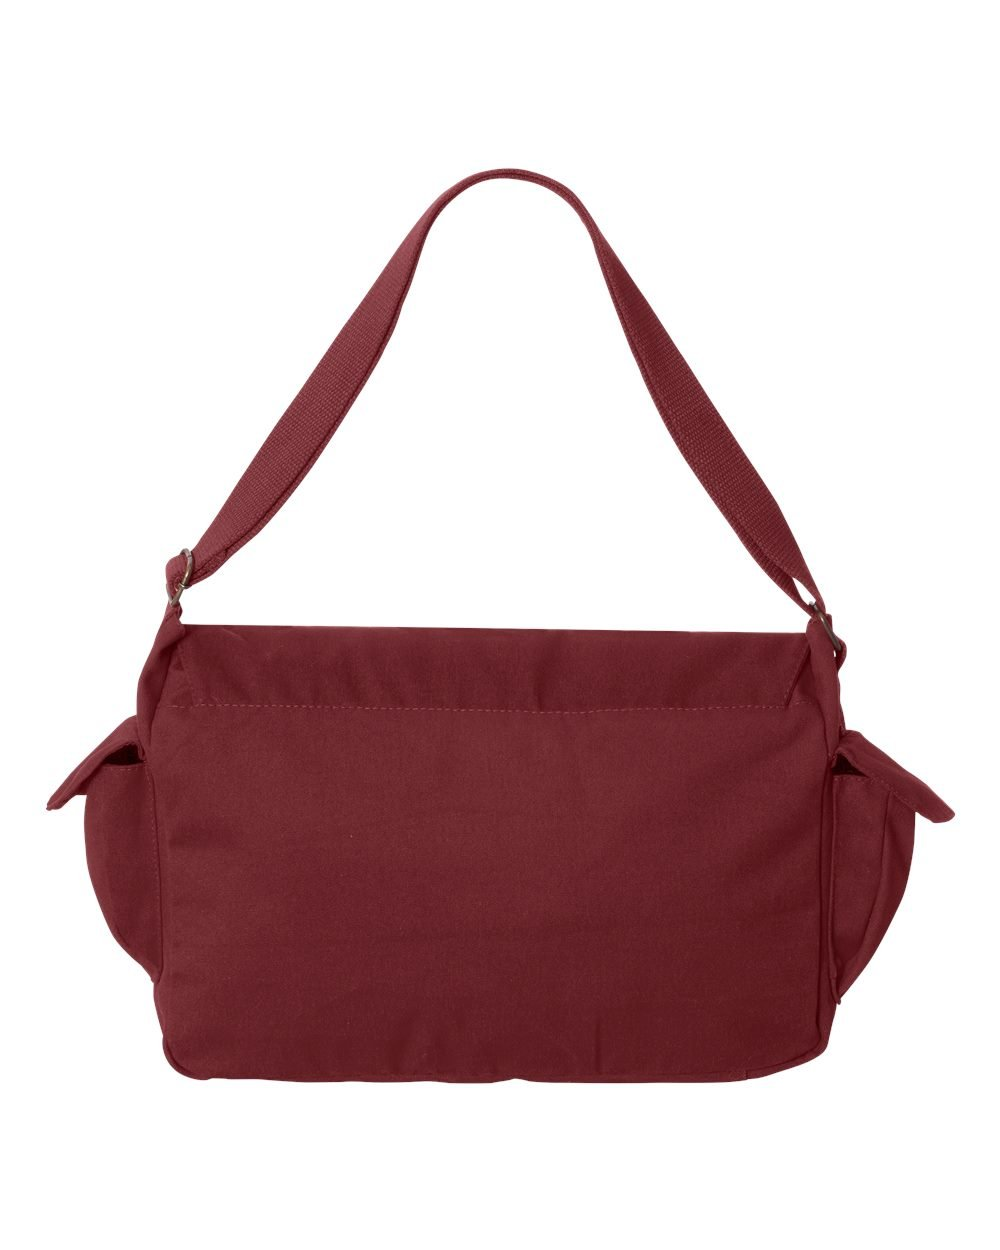 Tenacitee Born in 1956 - Aged Like a Fine Wine Maroon Brushed Canvas Messenger Bag by Tenacitee (Image #3)